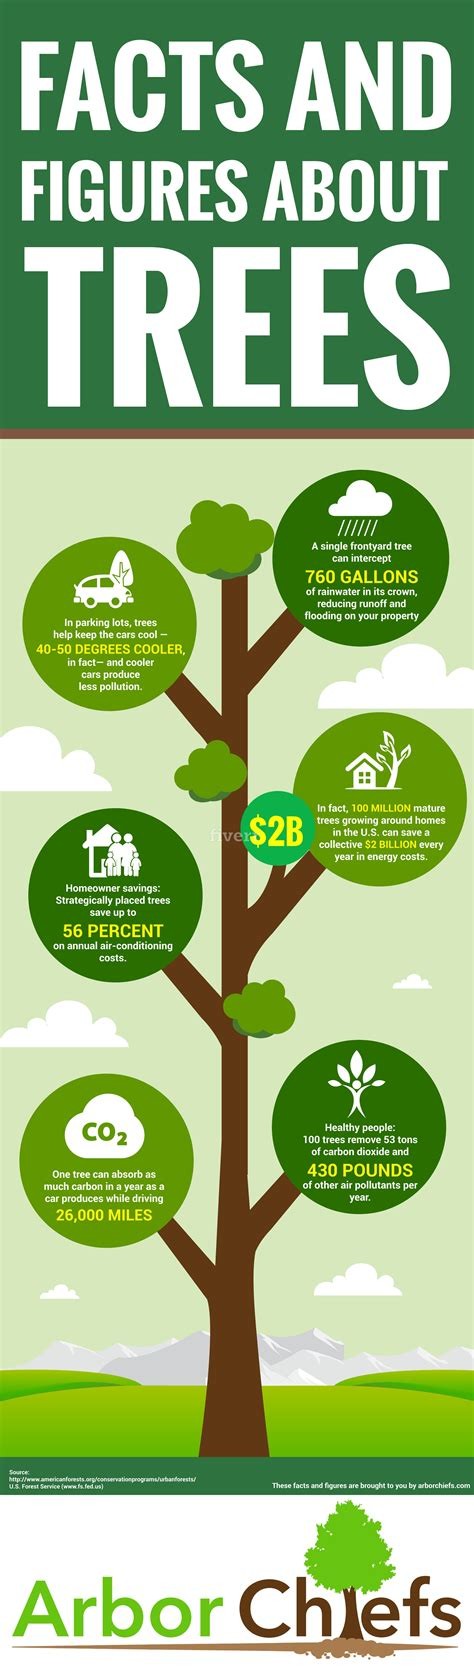 amazing facts and figures about trees infographic